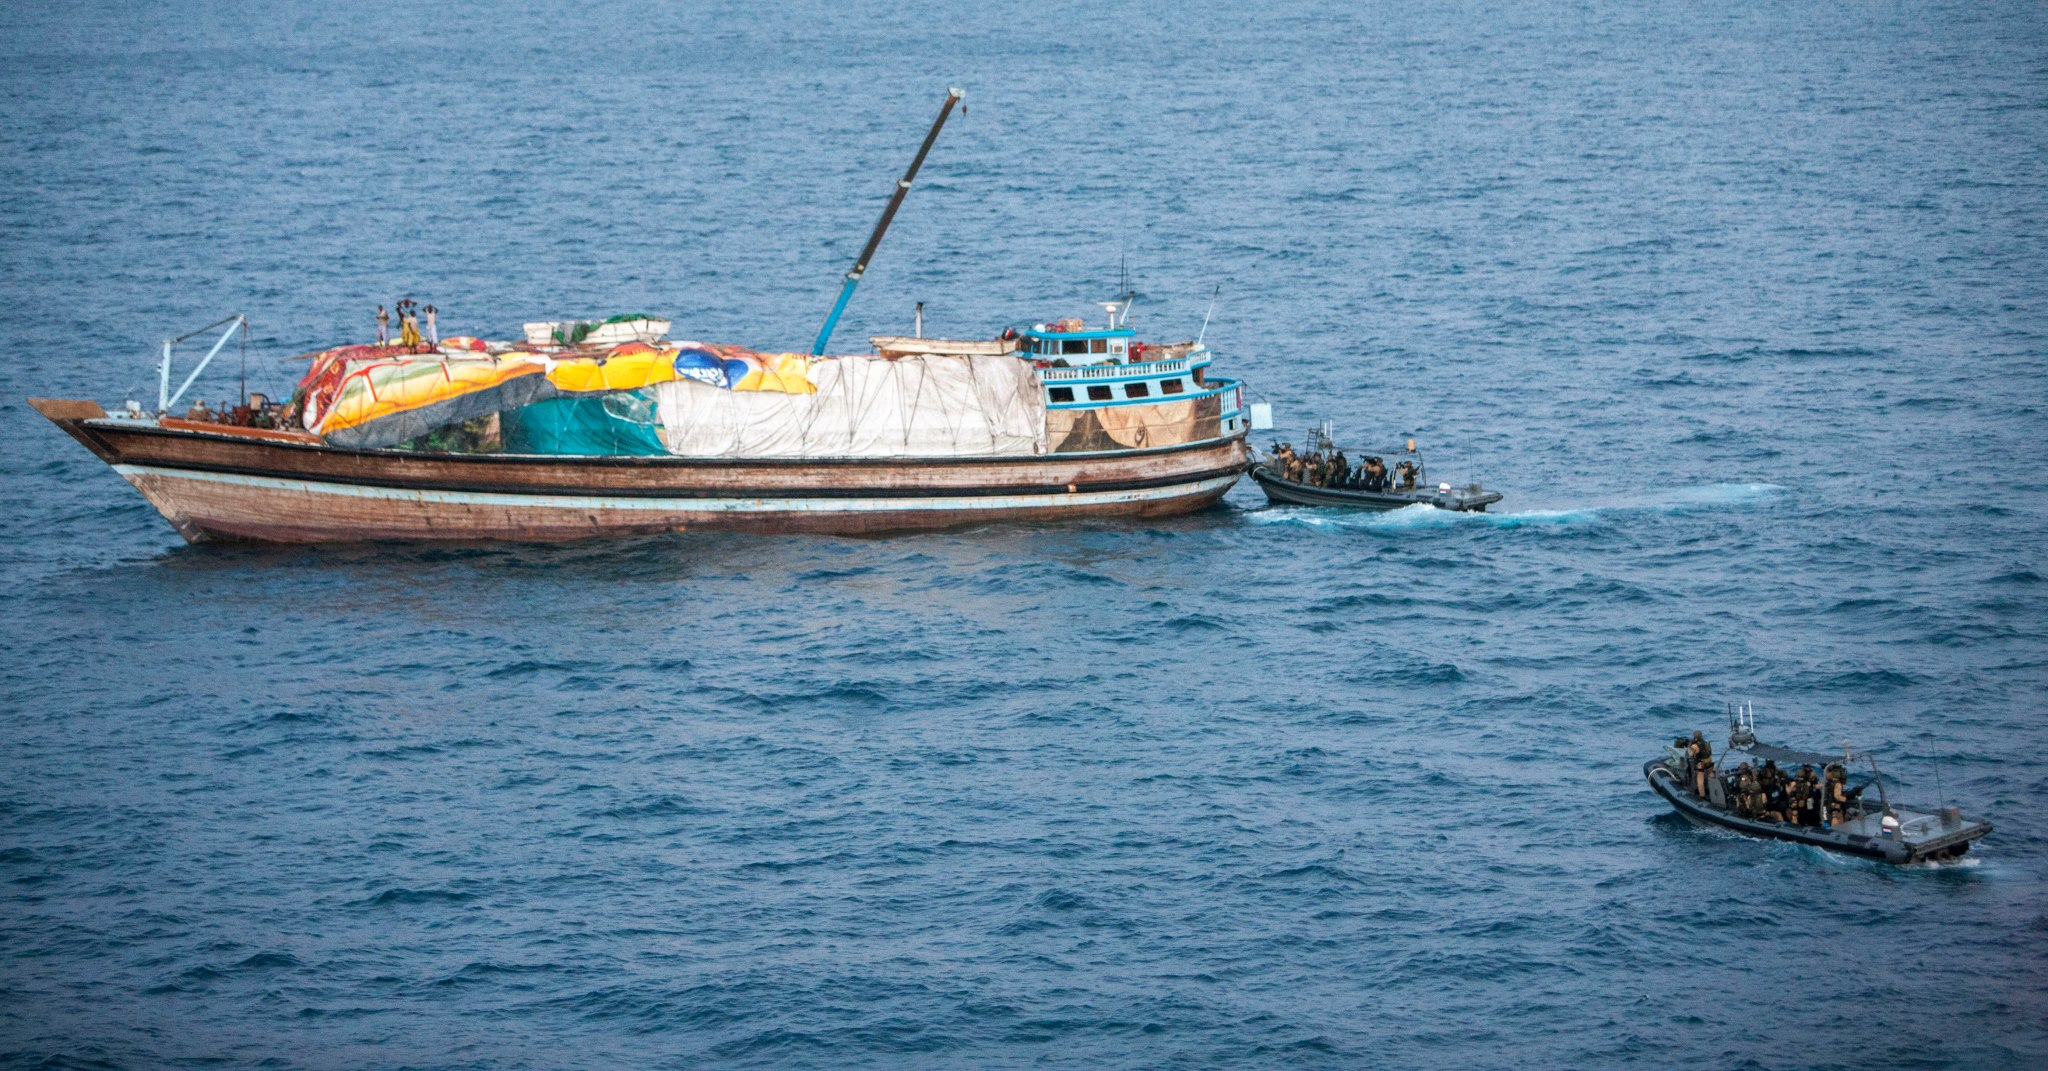 Disrupted dhow; capture 6 pirates - Photo: NATO Oceanshield